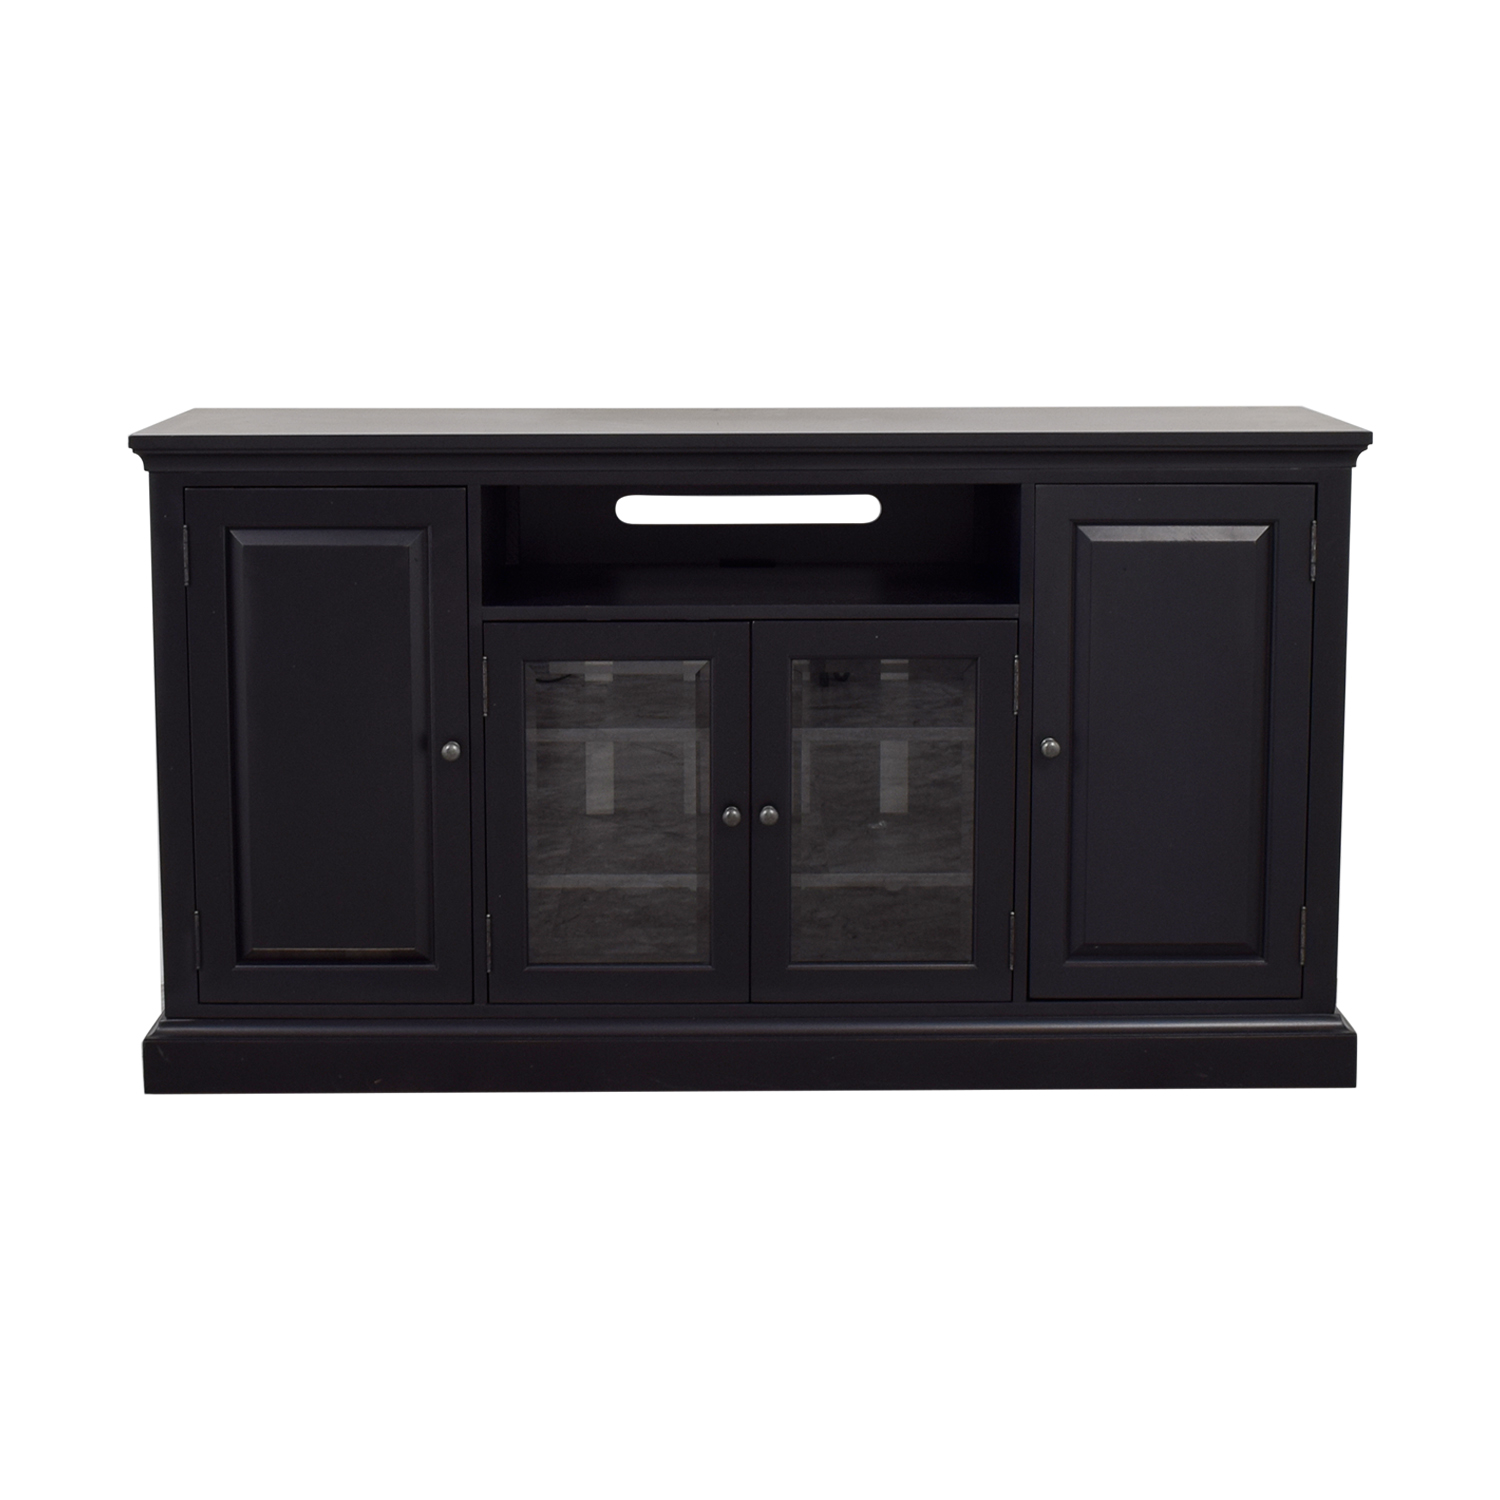 Ethan Allen Ethan Allen Black Media Console coupon